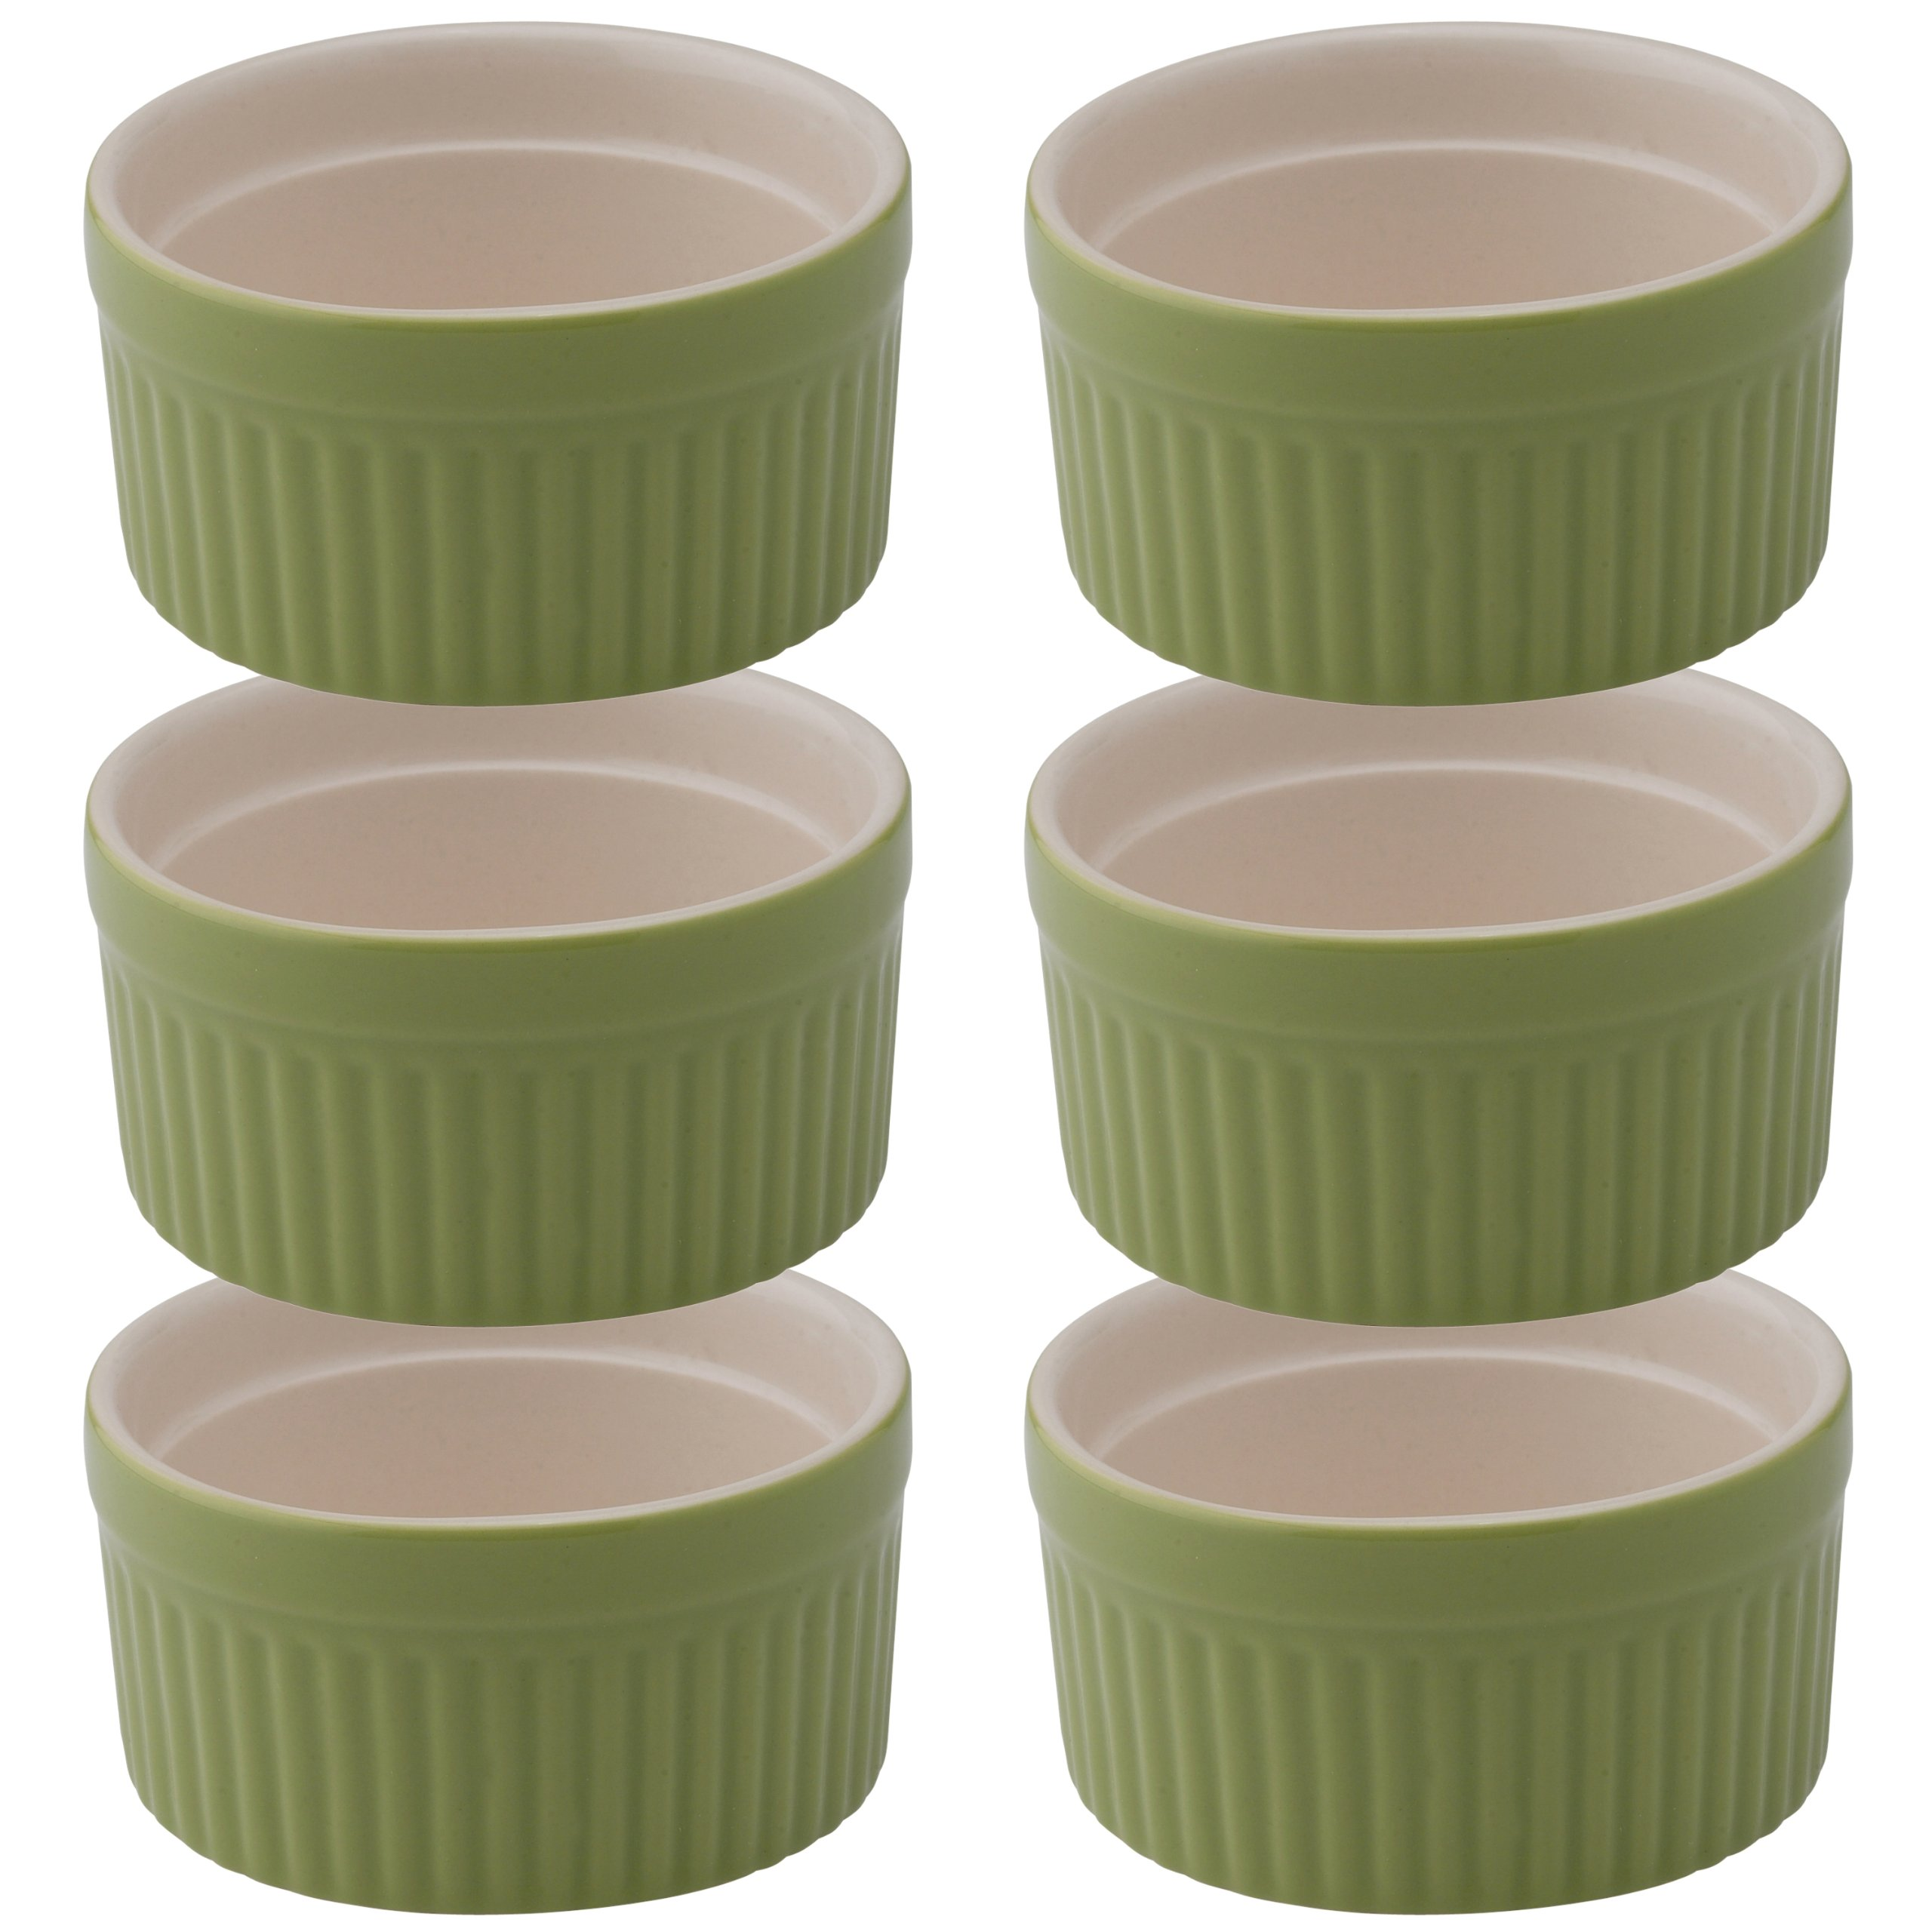 Mrs. Anderson's Baking Souffle, Ceramic Earthenware, Sage, Set of 6, 3.75-Inch, 6-Ounce Capacity